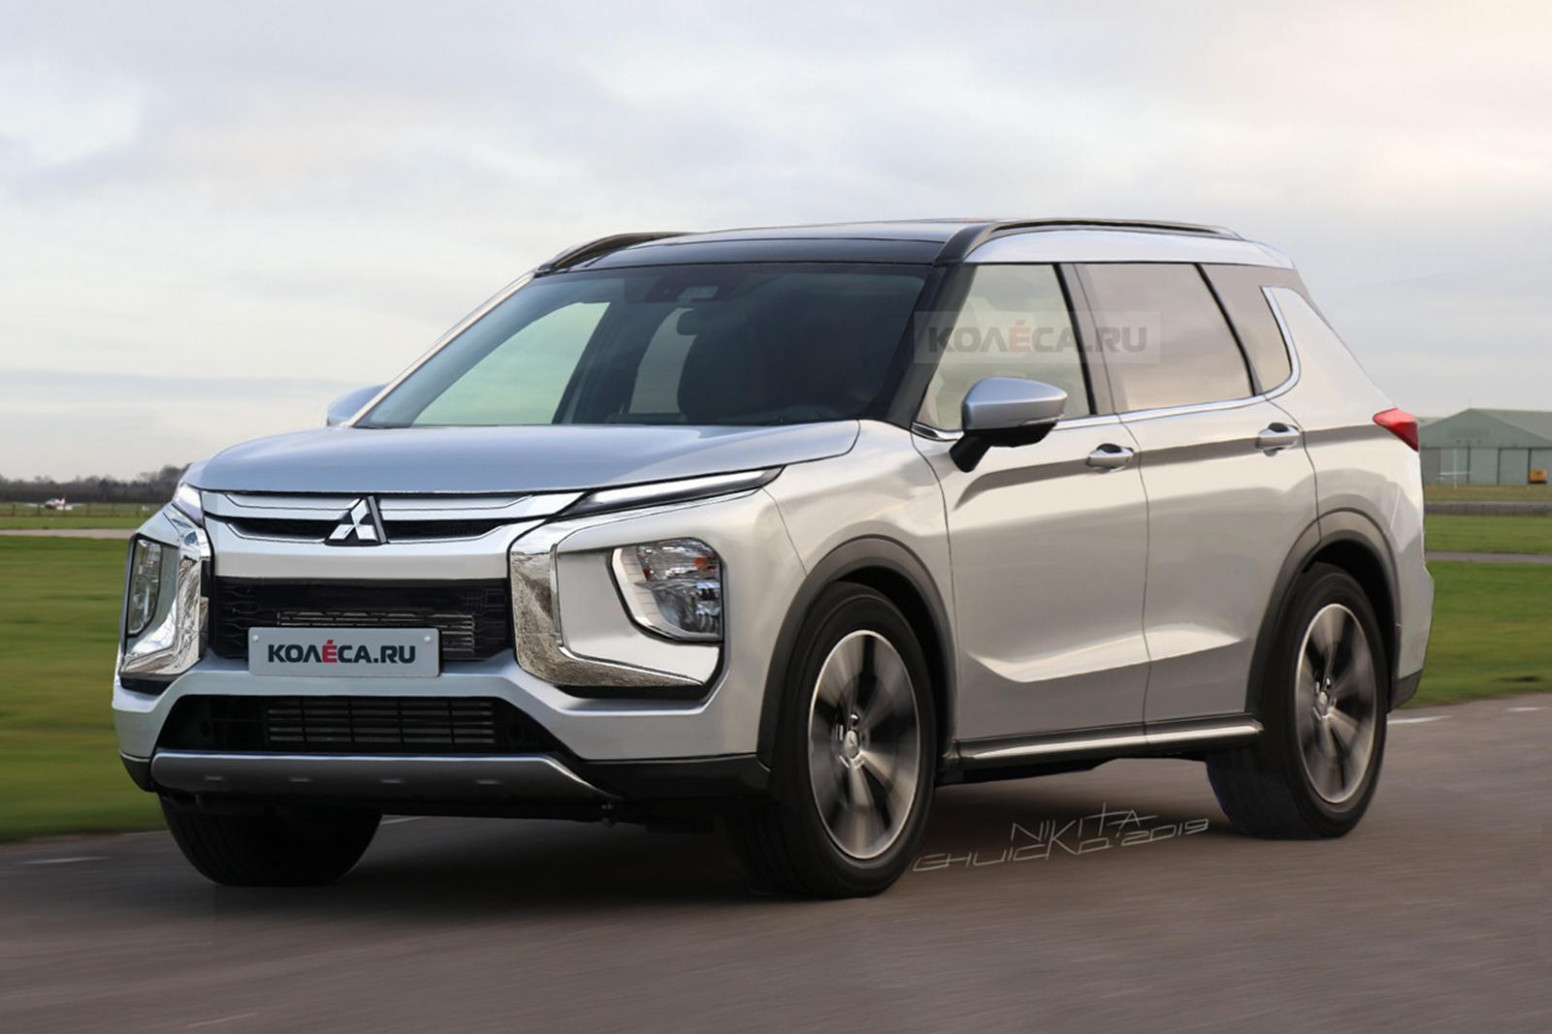 Redesign and Concept 2022 Mitsubishi Lineup